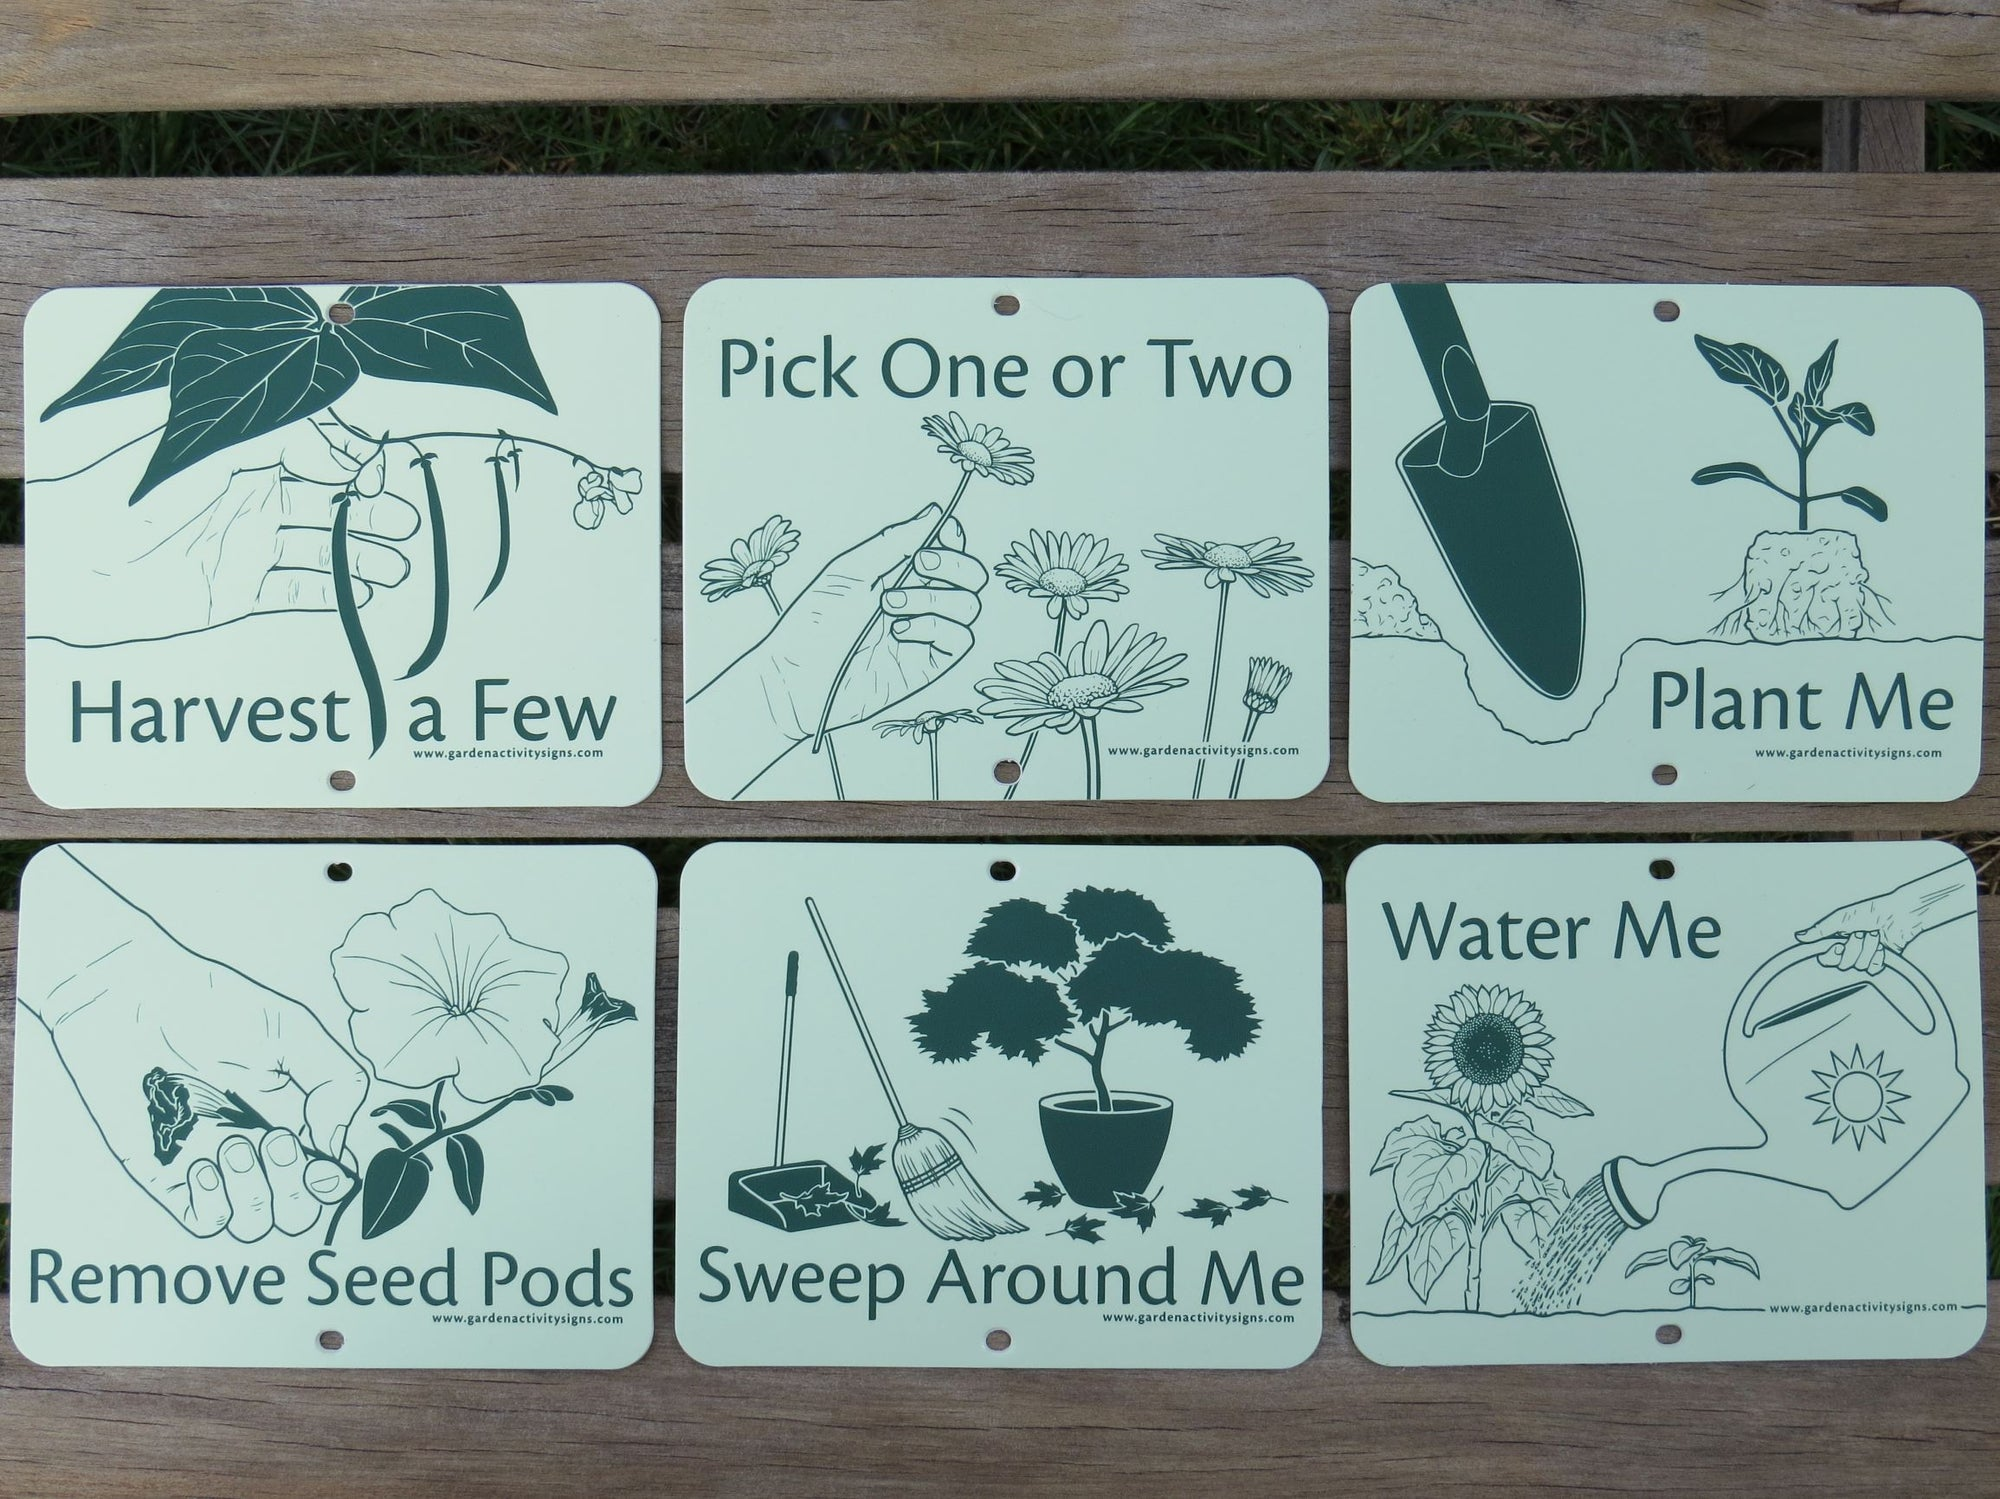 Illustrated garden signs that invite hands-on gardening. Can be attached to bamboo stakes, fences, etc. Includes: harvest a few, pick one or two, plant me, remove seed pods, sweep around me, and water me. For horticultural therapy and school gardens